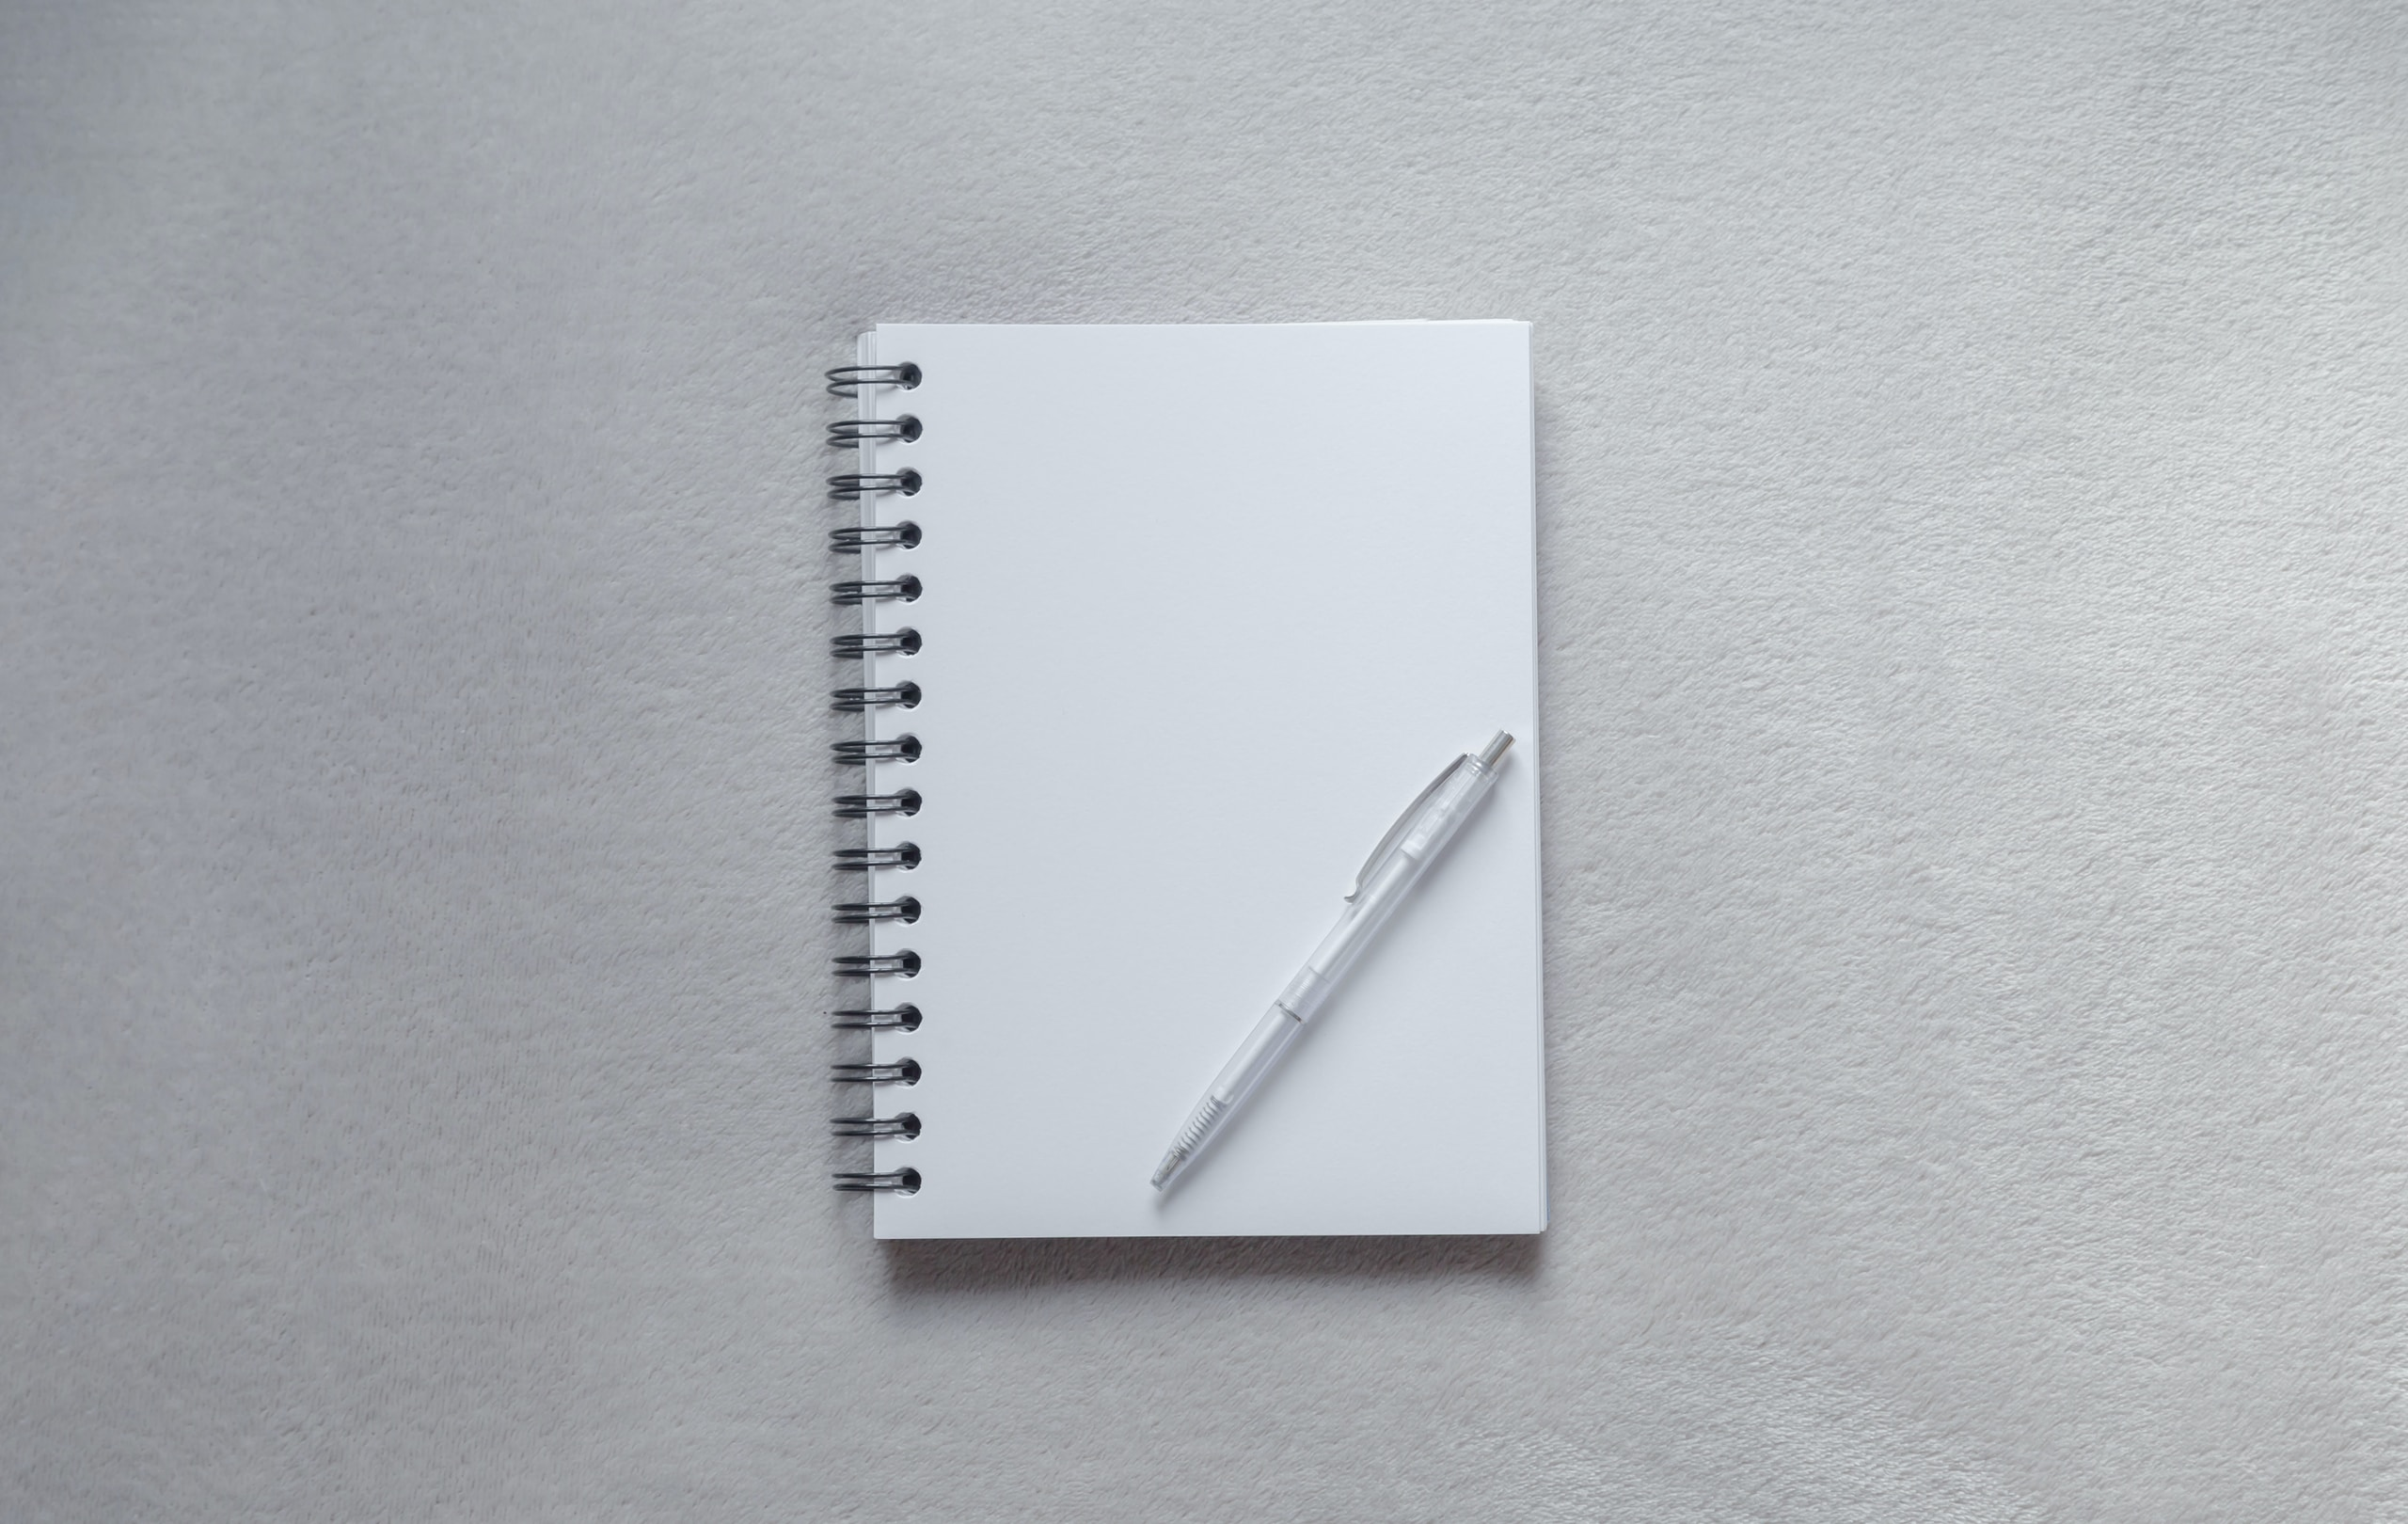 white notebook with pen on top